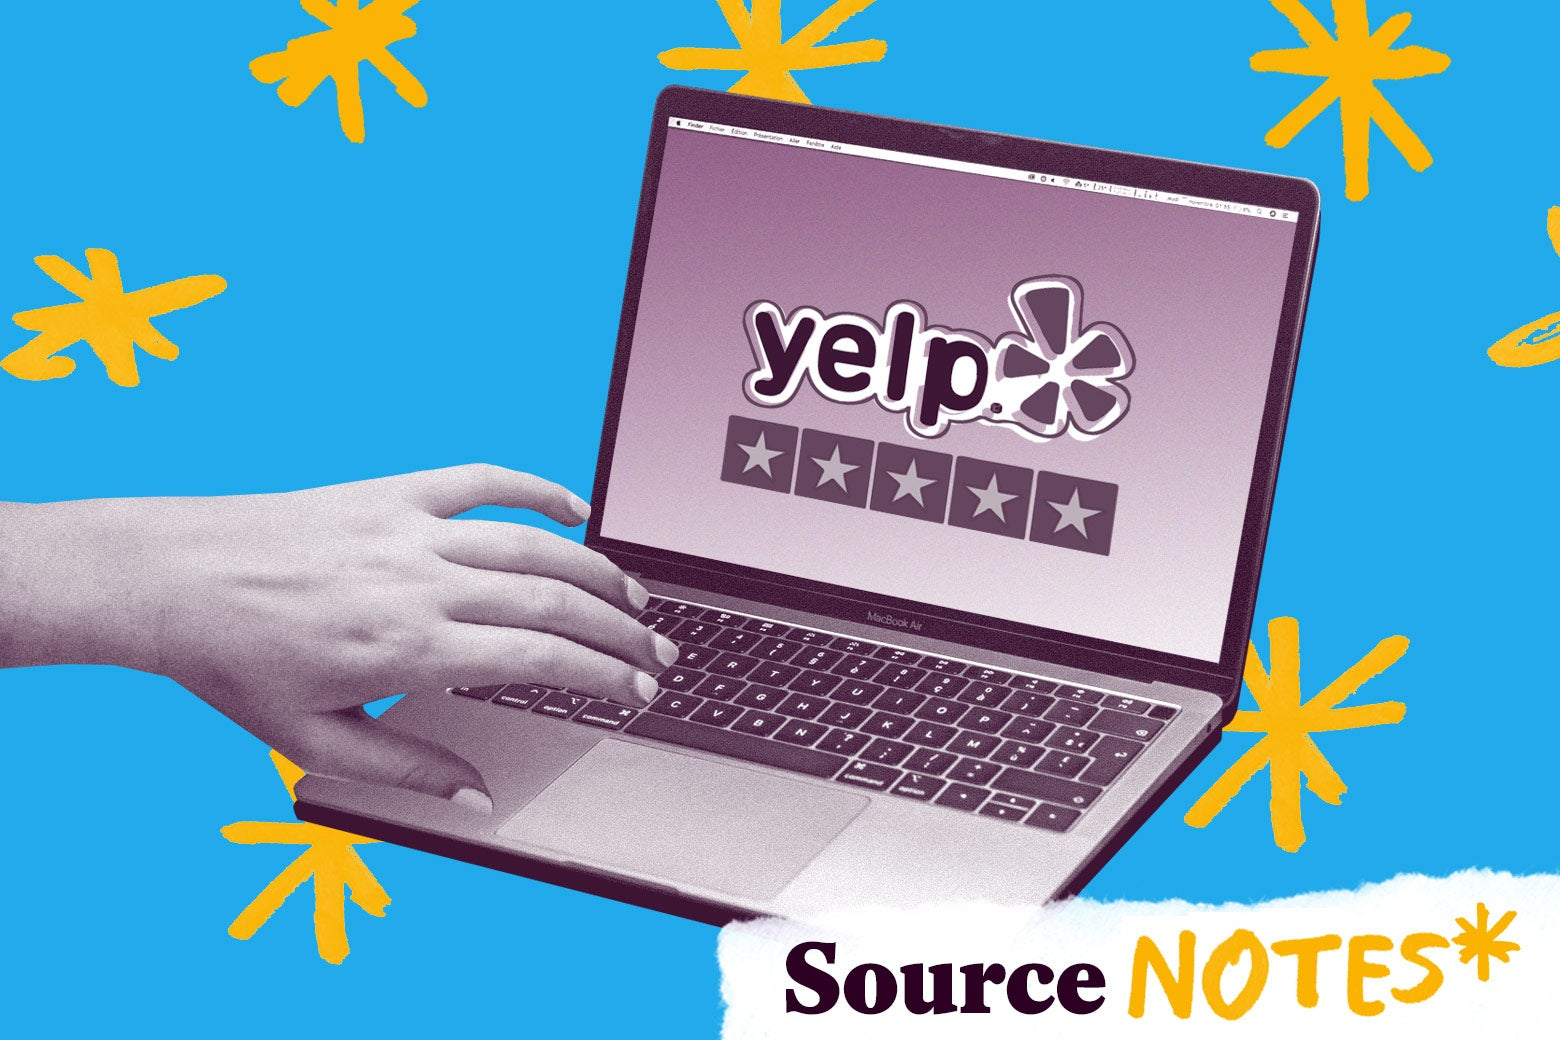 Photo illustration of a hand on a laptop showing the Yelp logo.